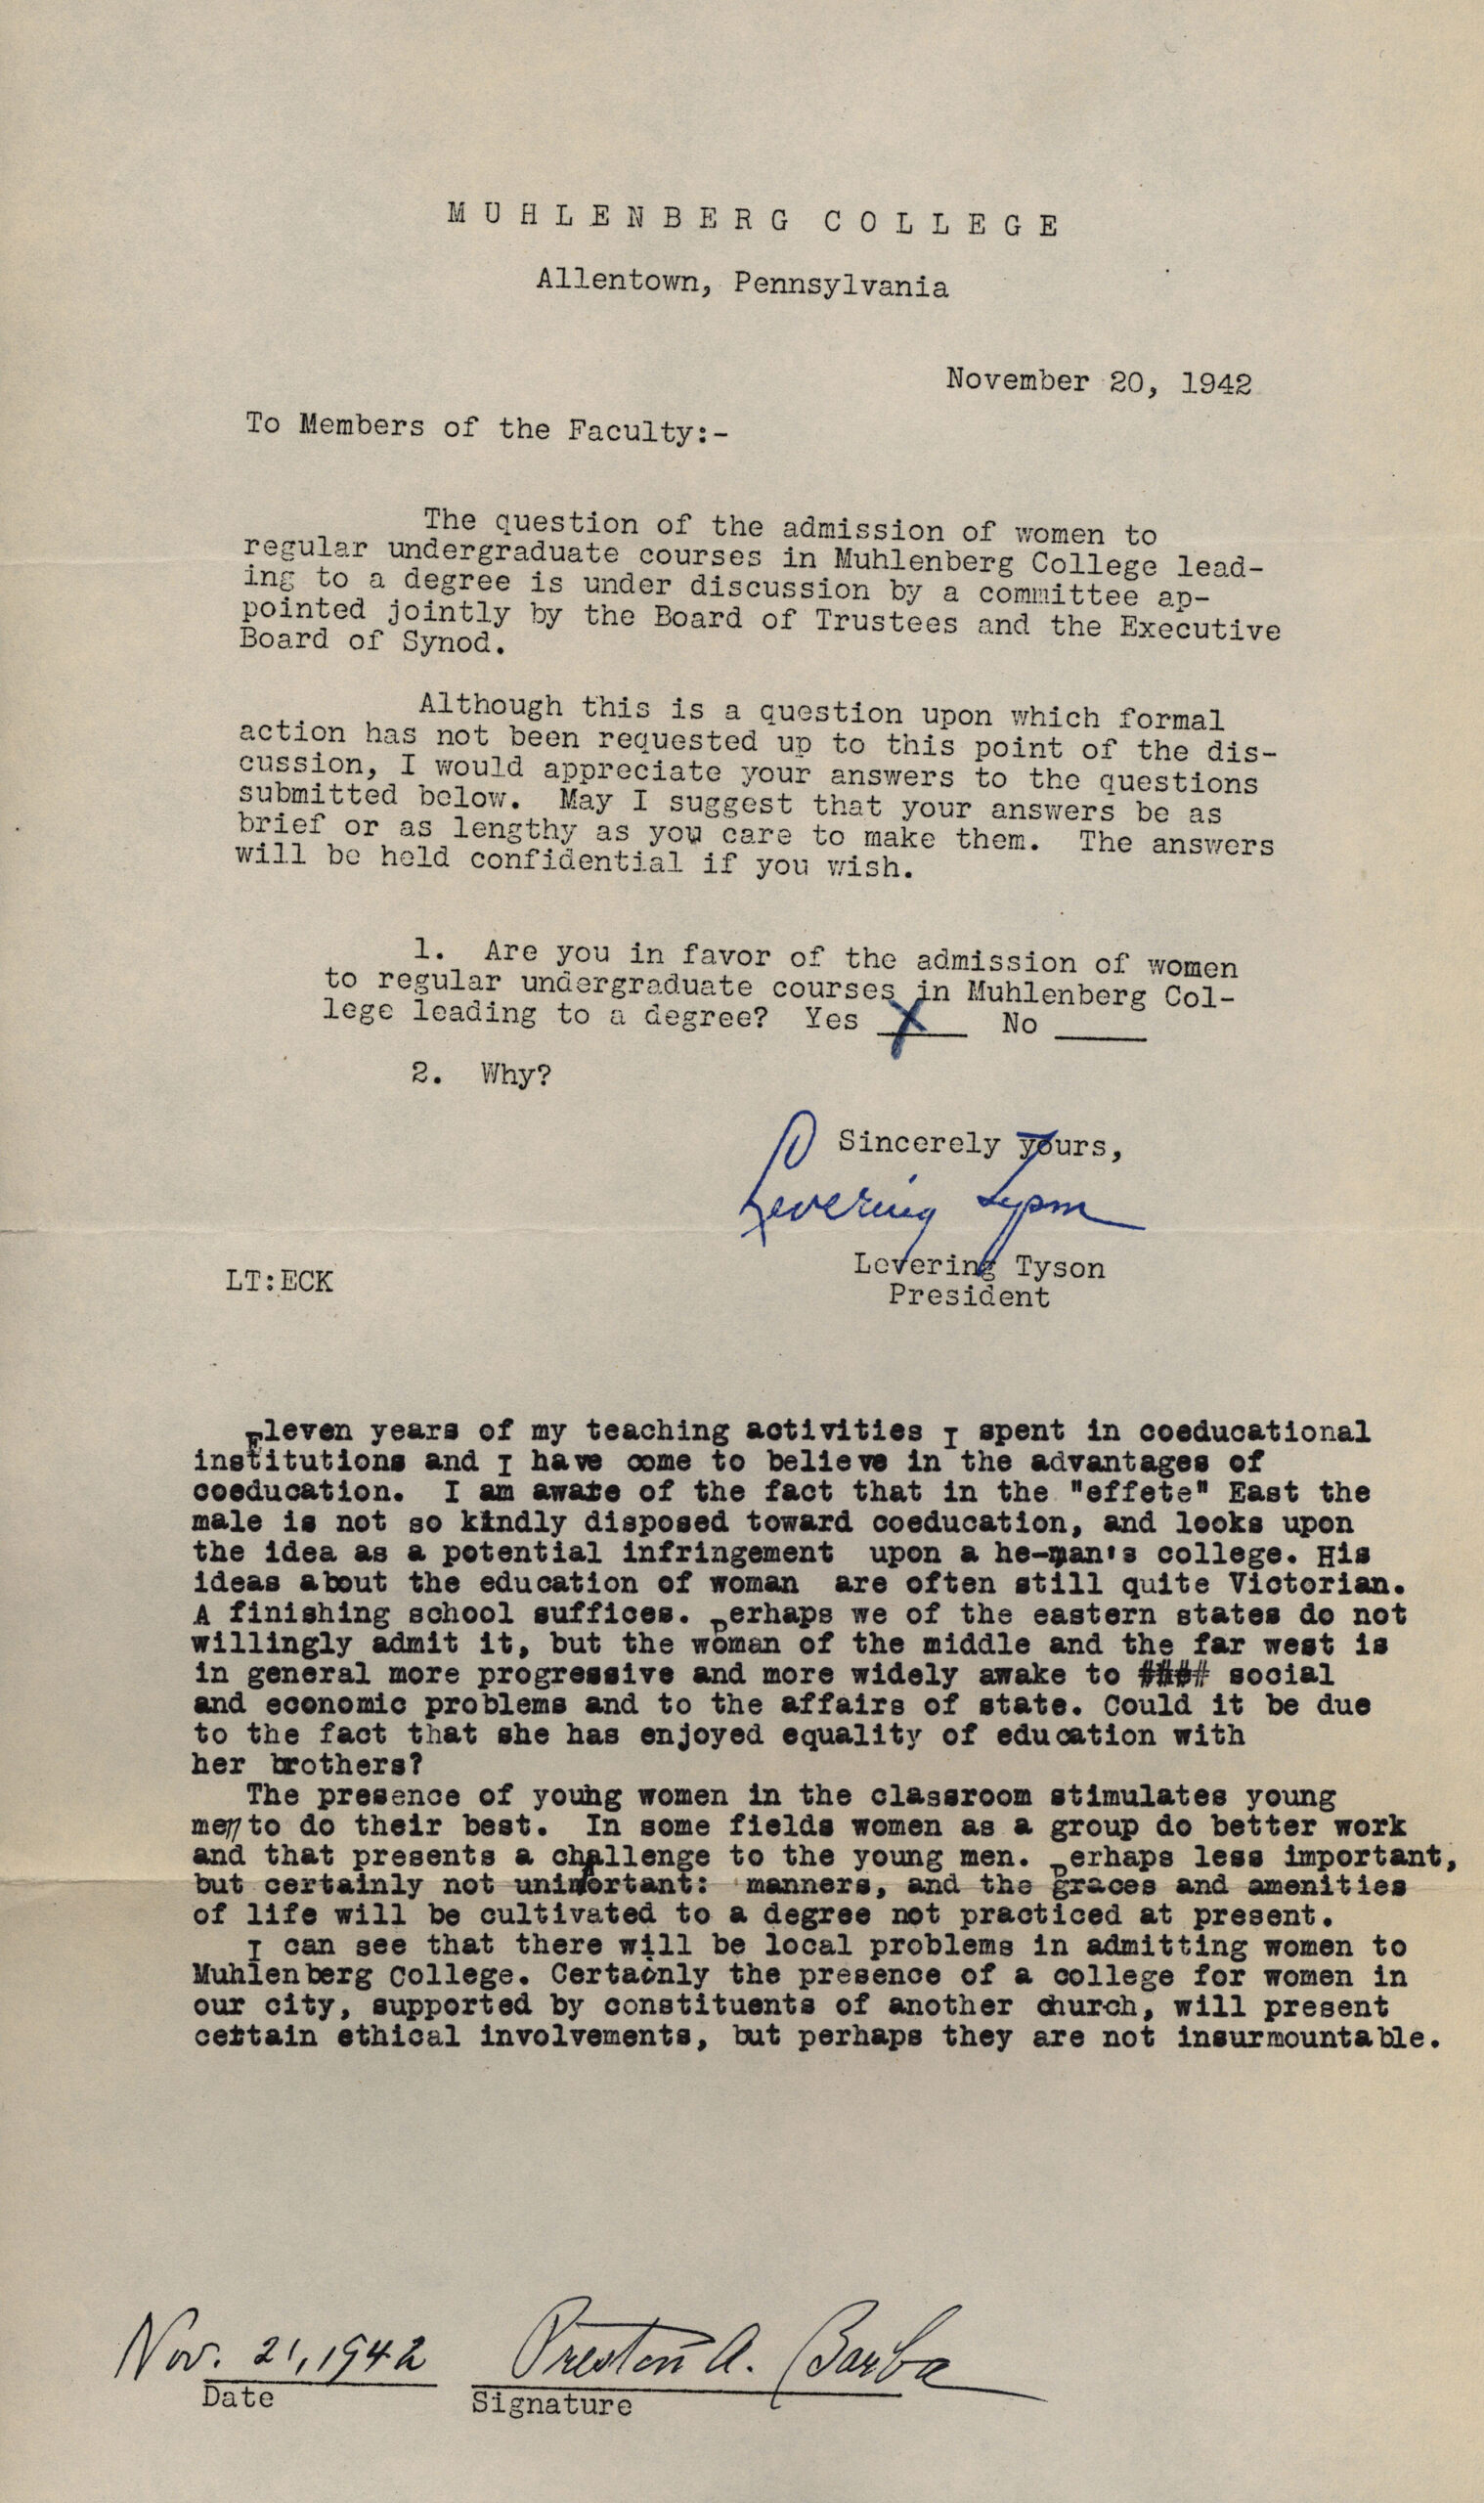 Dr. Preston Barba's reponse to faculty survey about the prospect of coeducation, 1942.